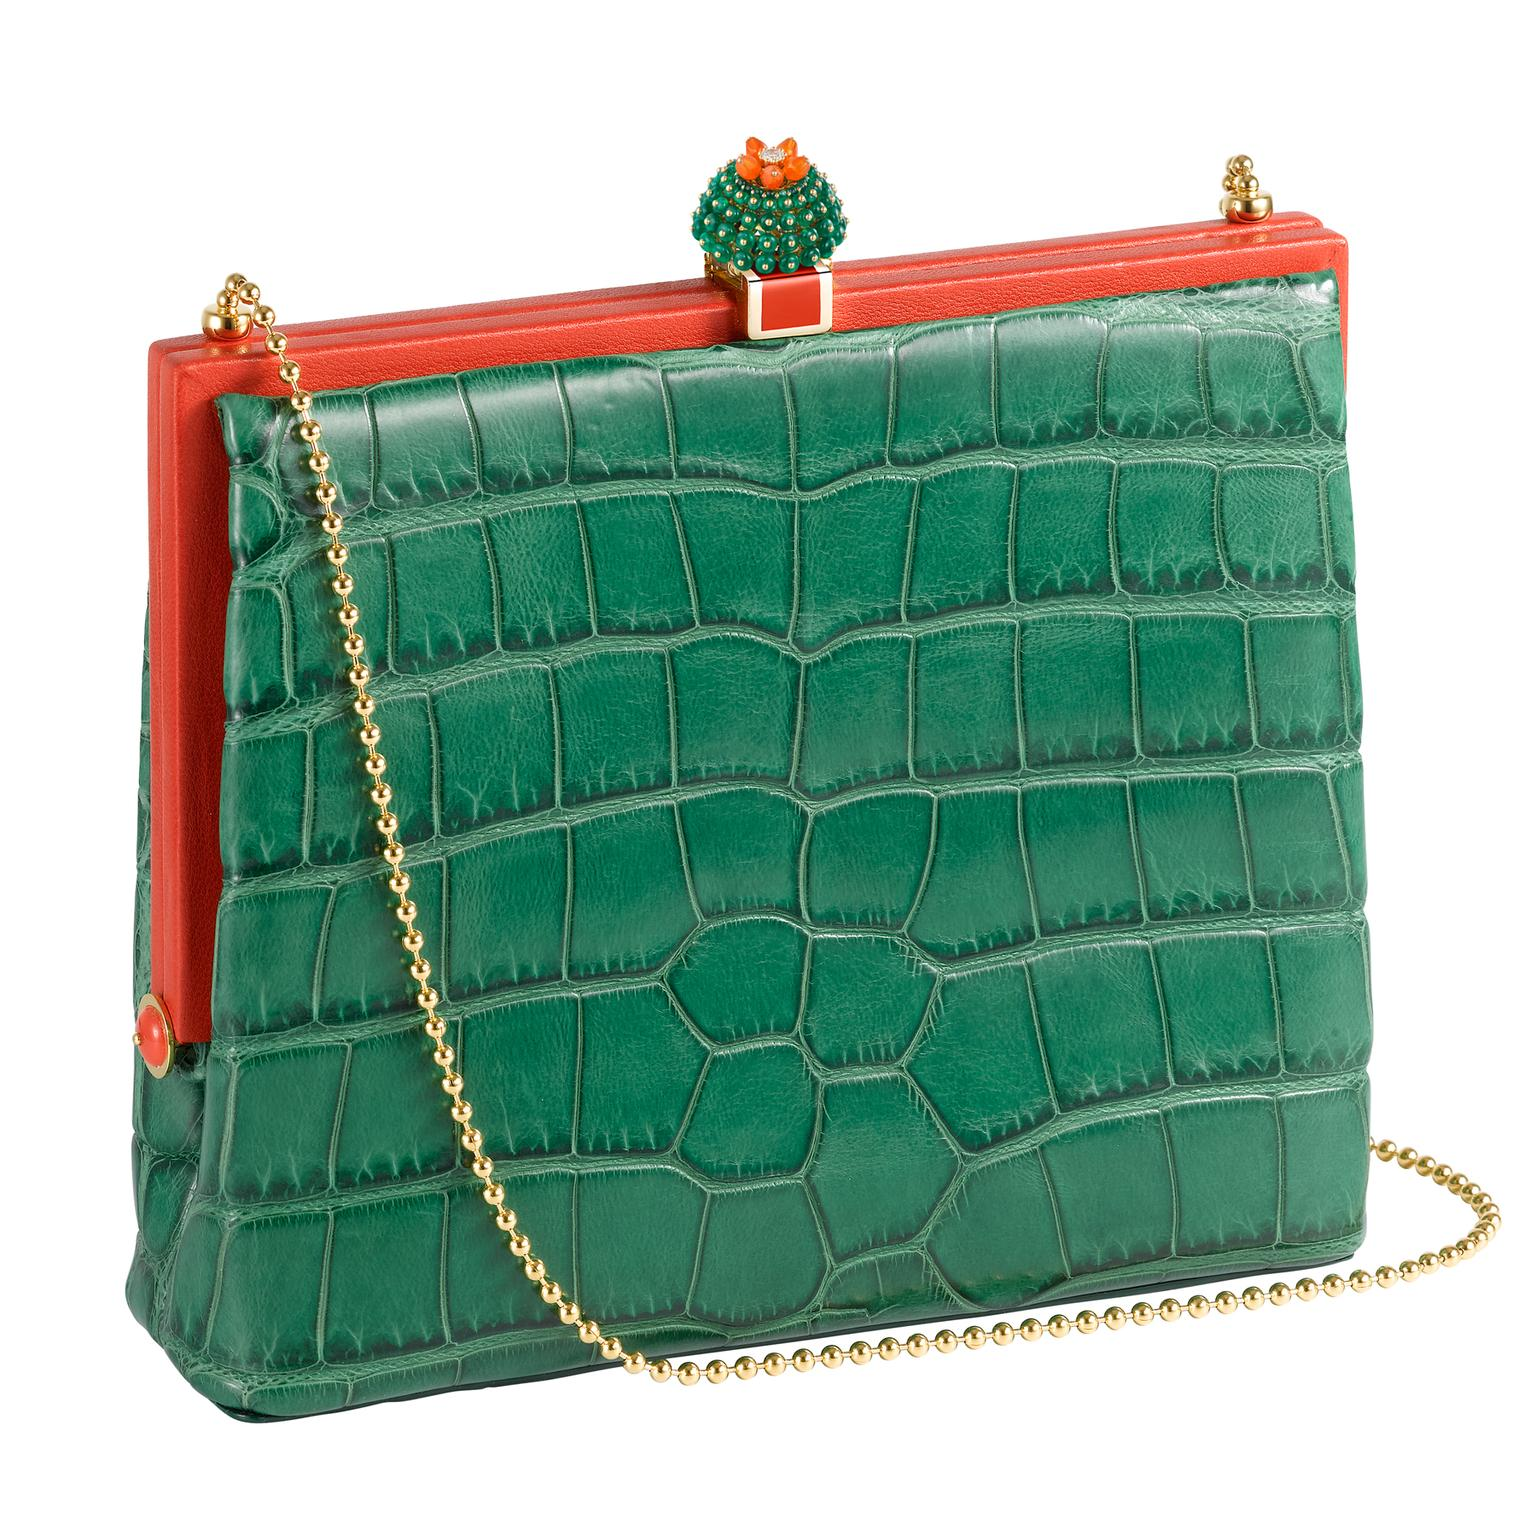 Green alligator Cactus de Cartier handbag